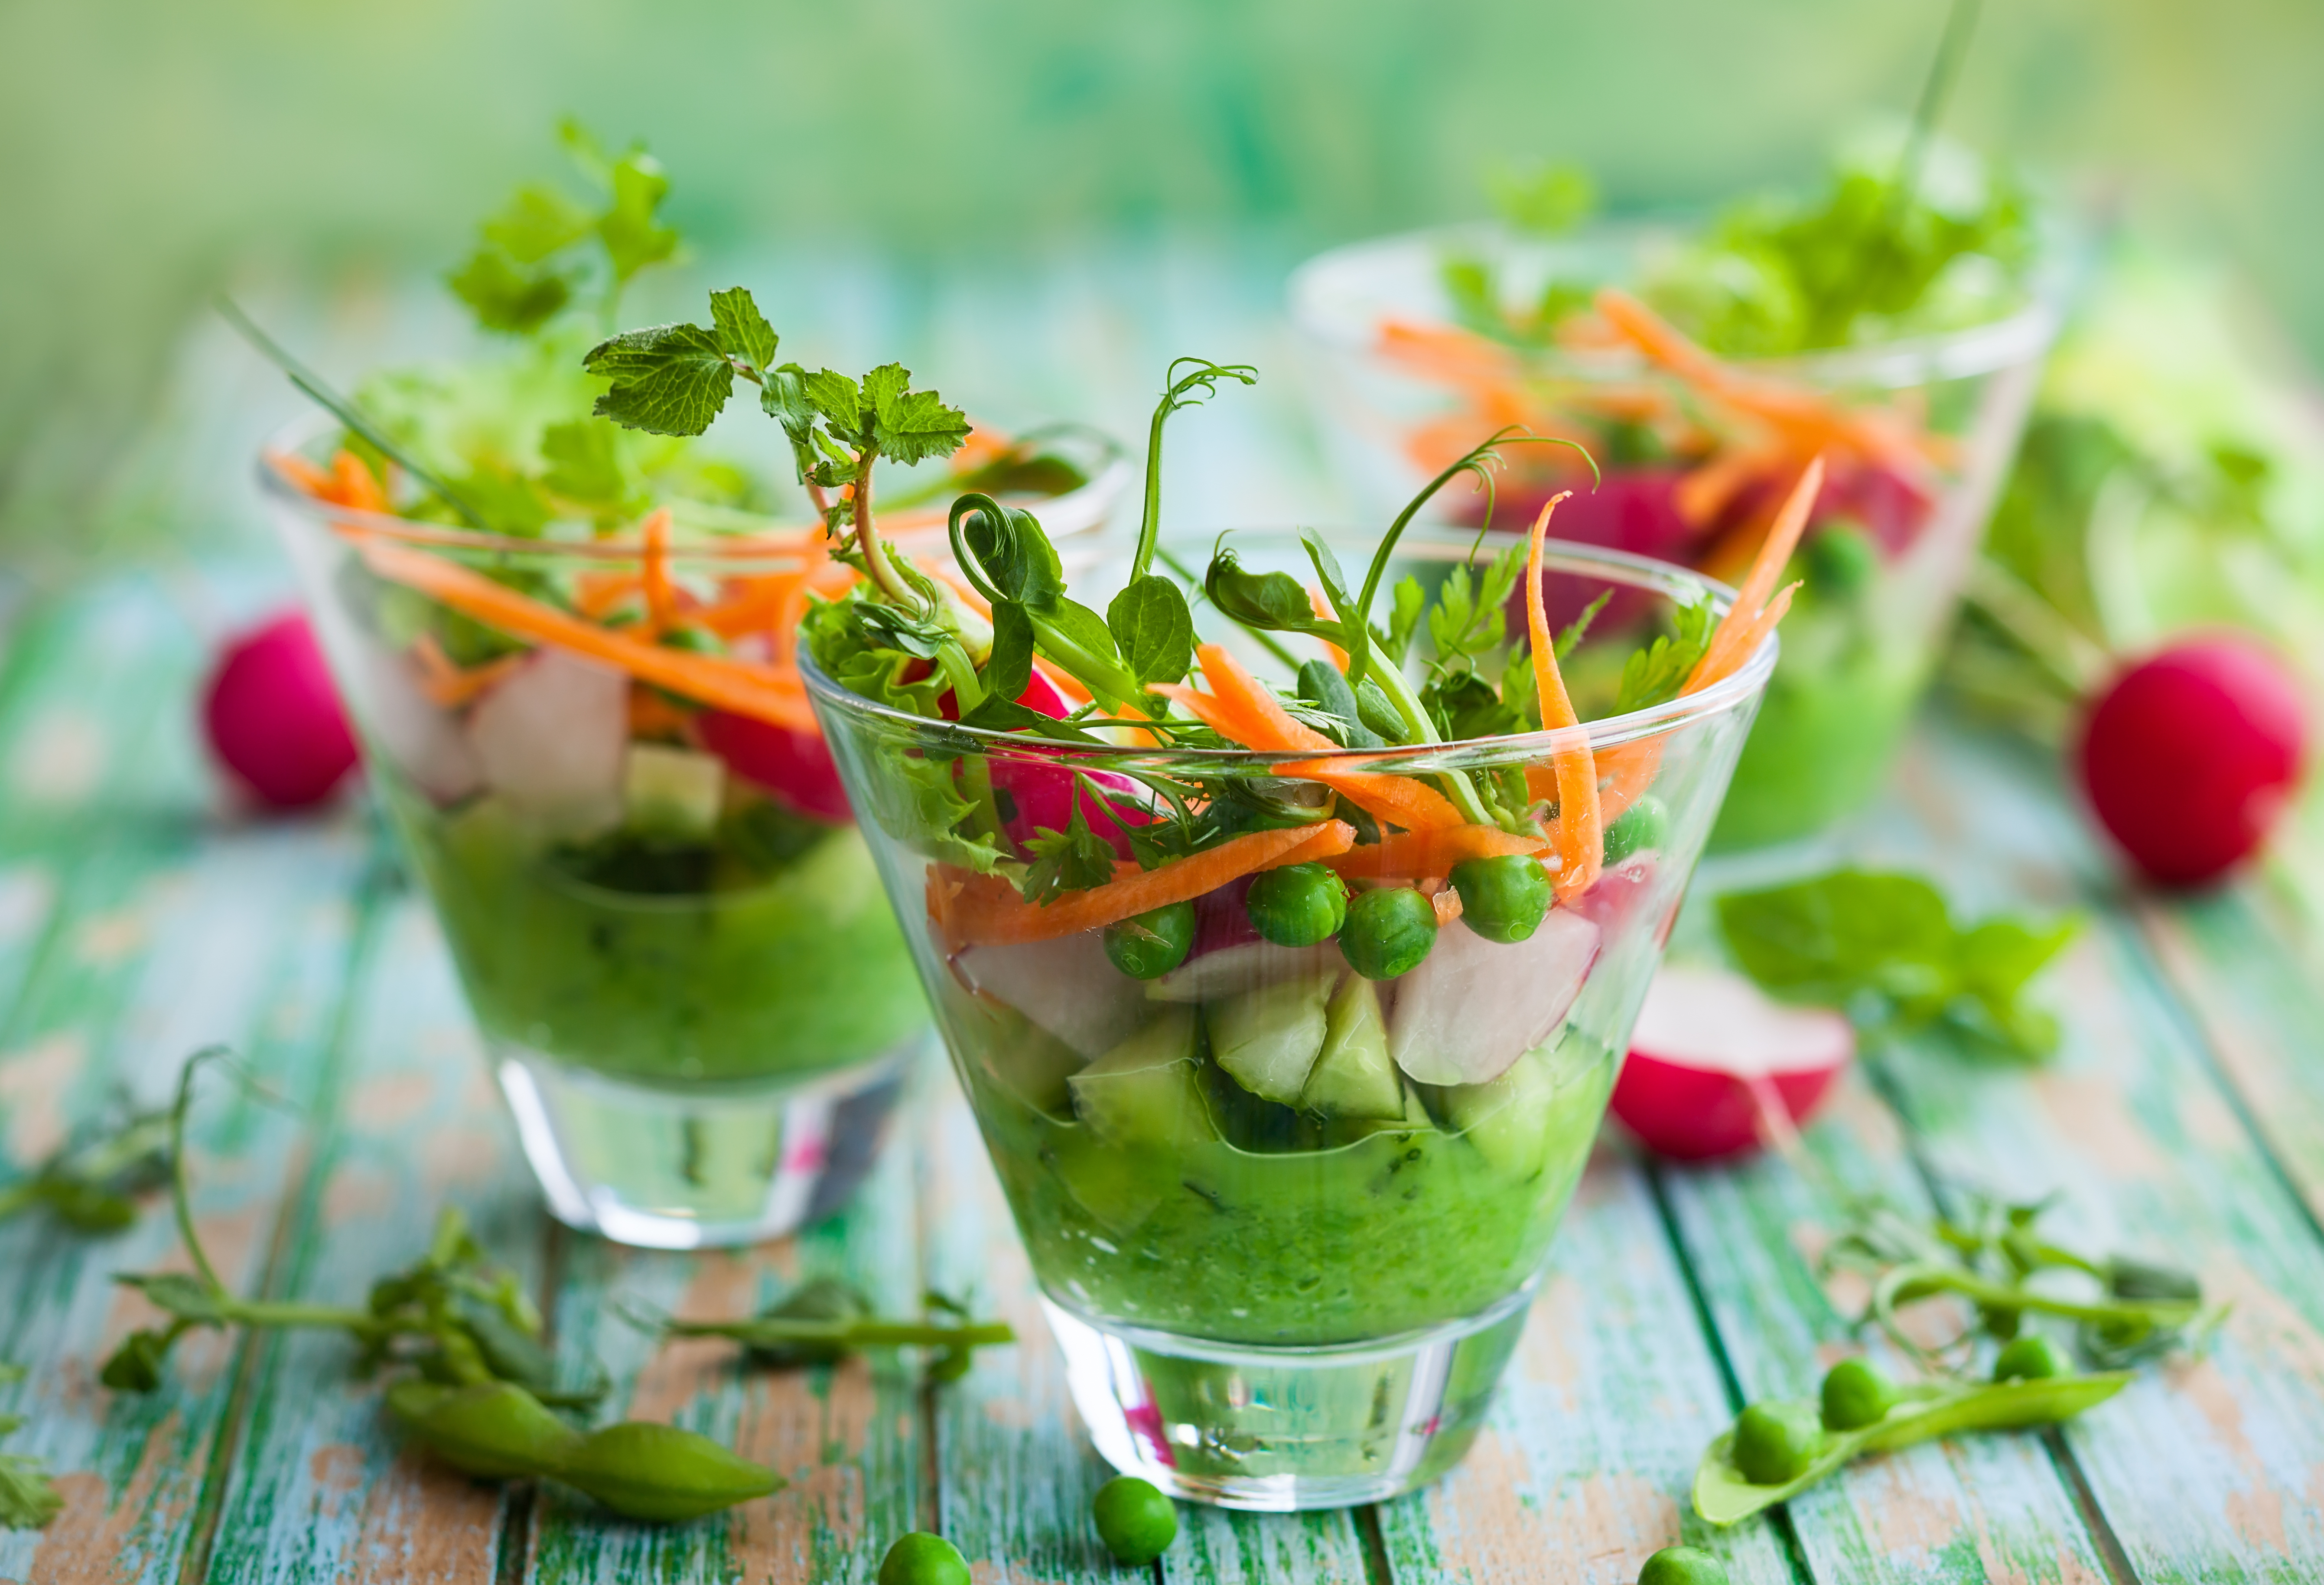 Spring appetizer with raw vegetables and